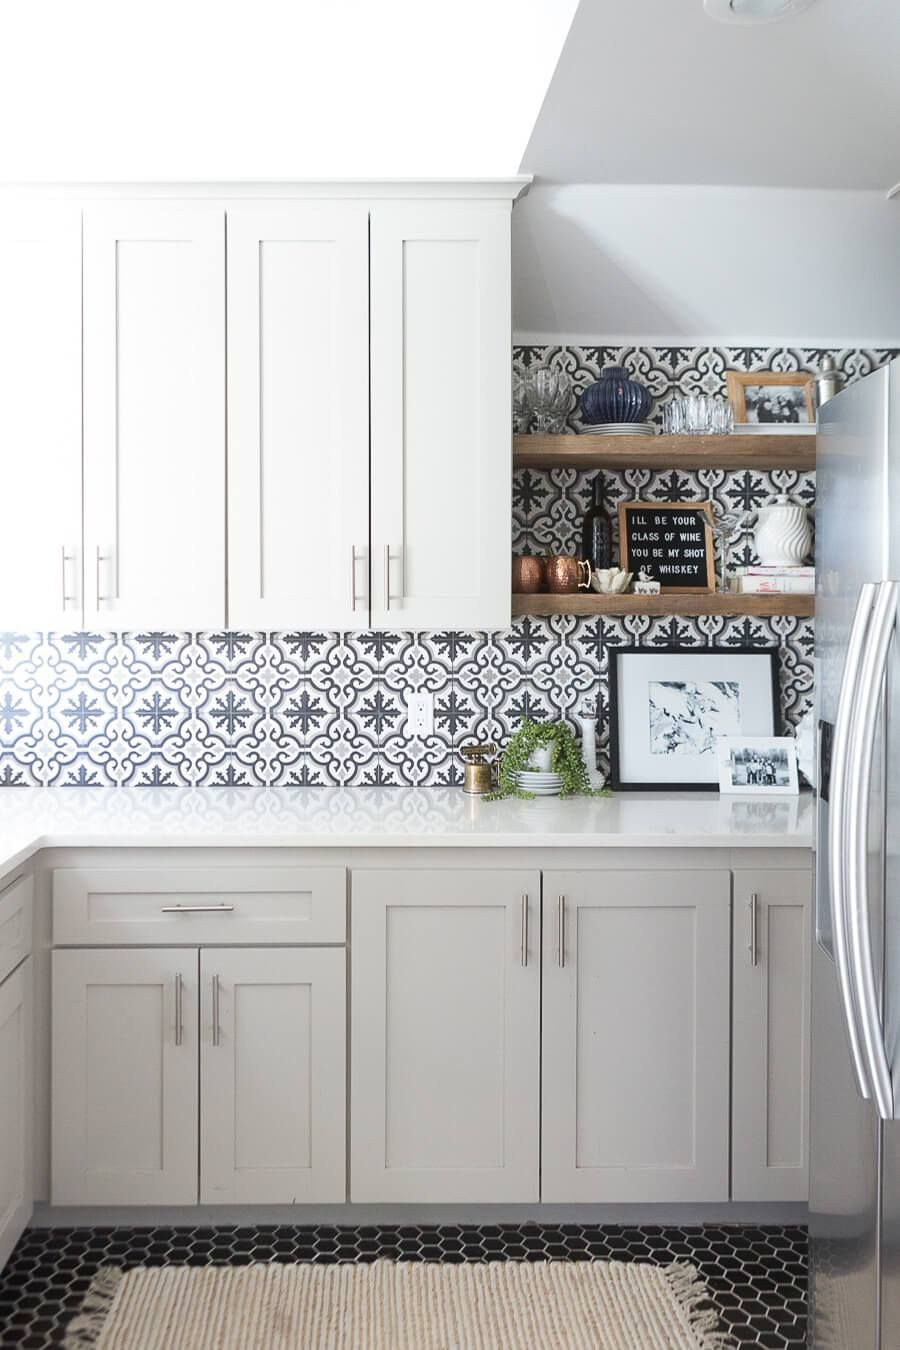 Photo Shoot Ideas For Mother And Daughter Kitchen Design